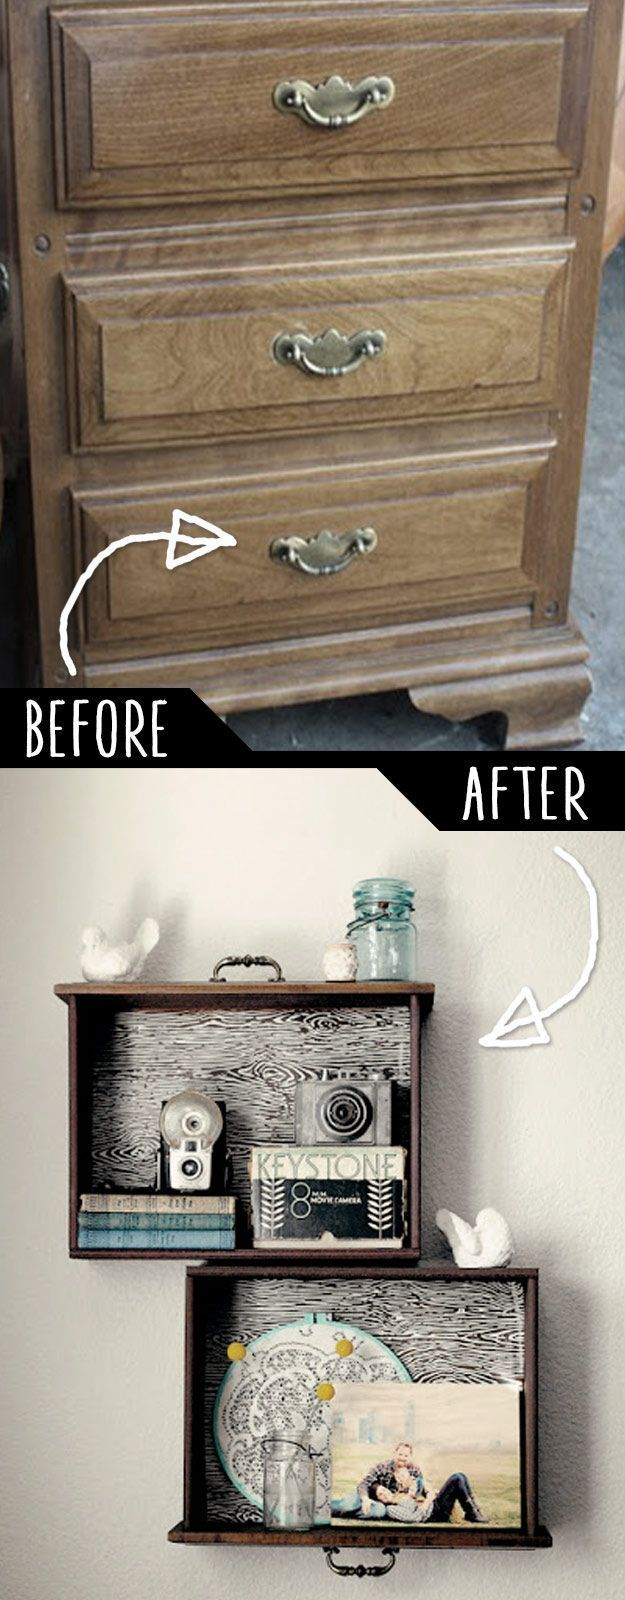 39 Clever DIY Furniture Hacks 266 best